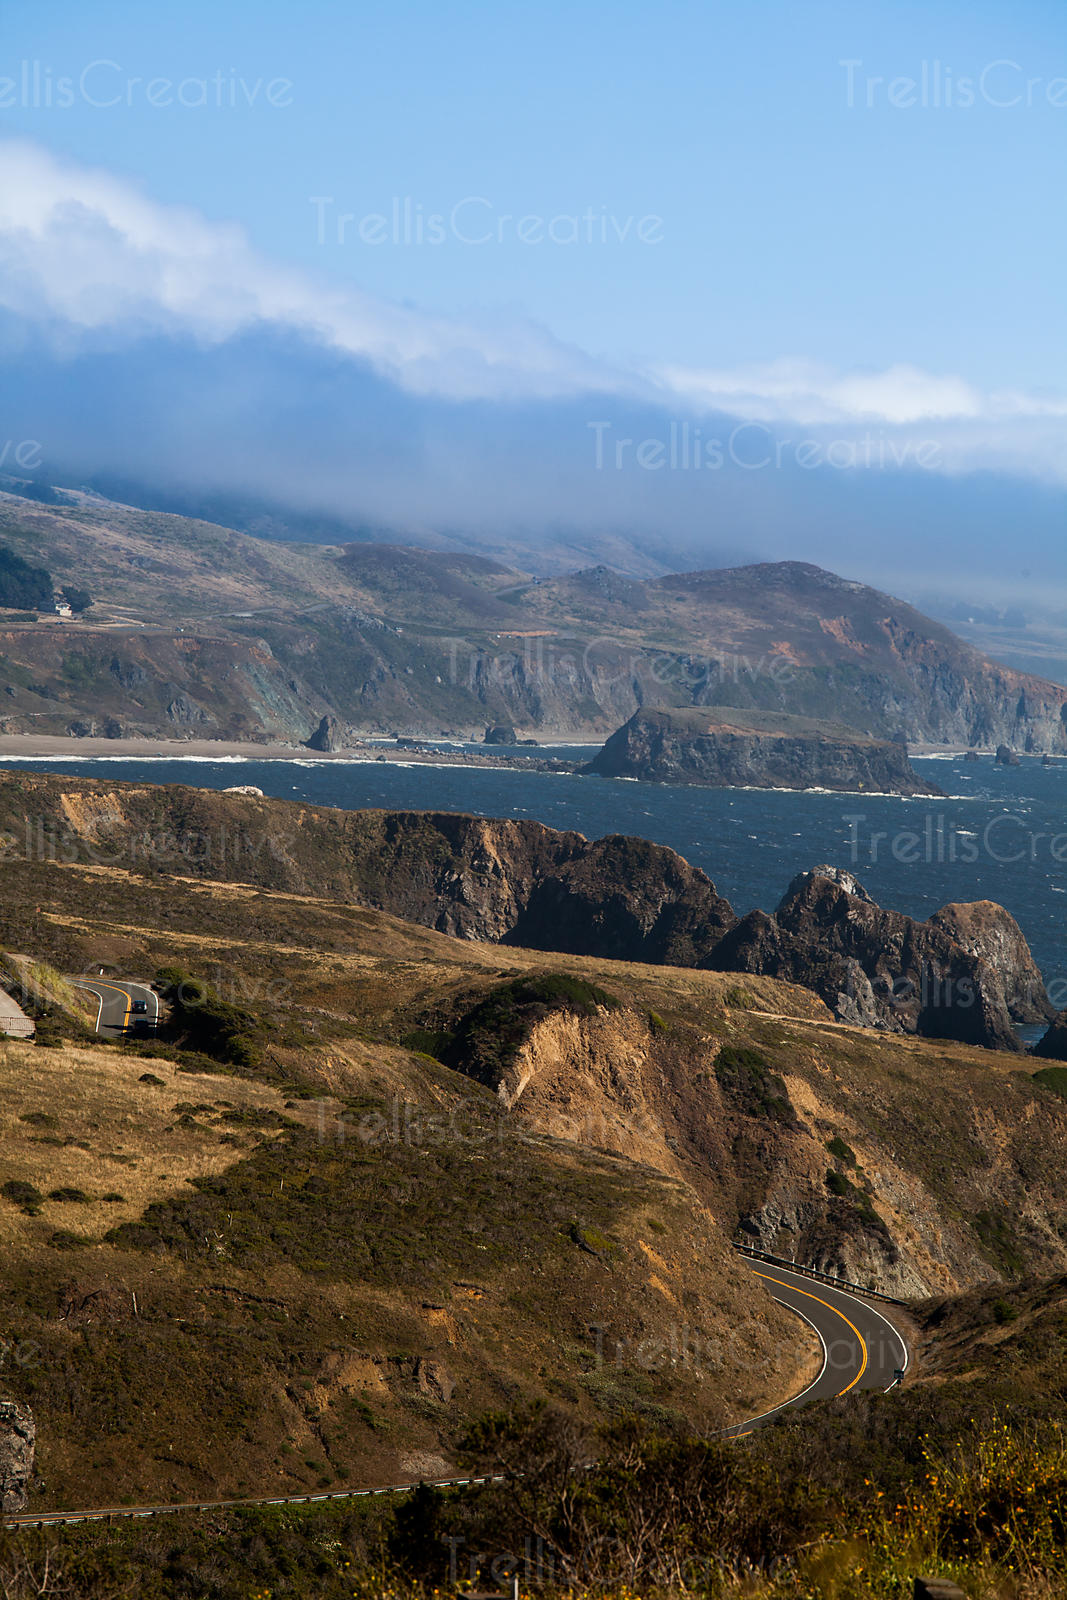 Fog lifts over the hills of the Great Highway along the Northern California coastline.